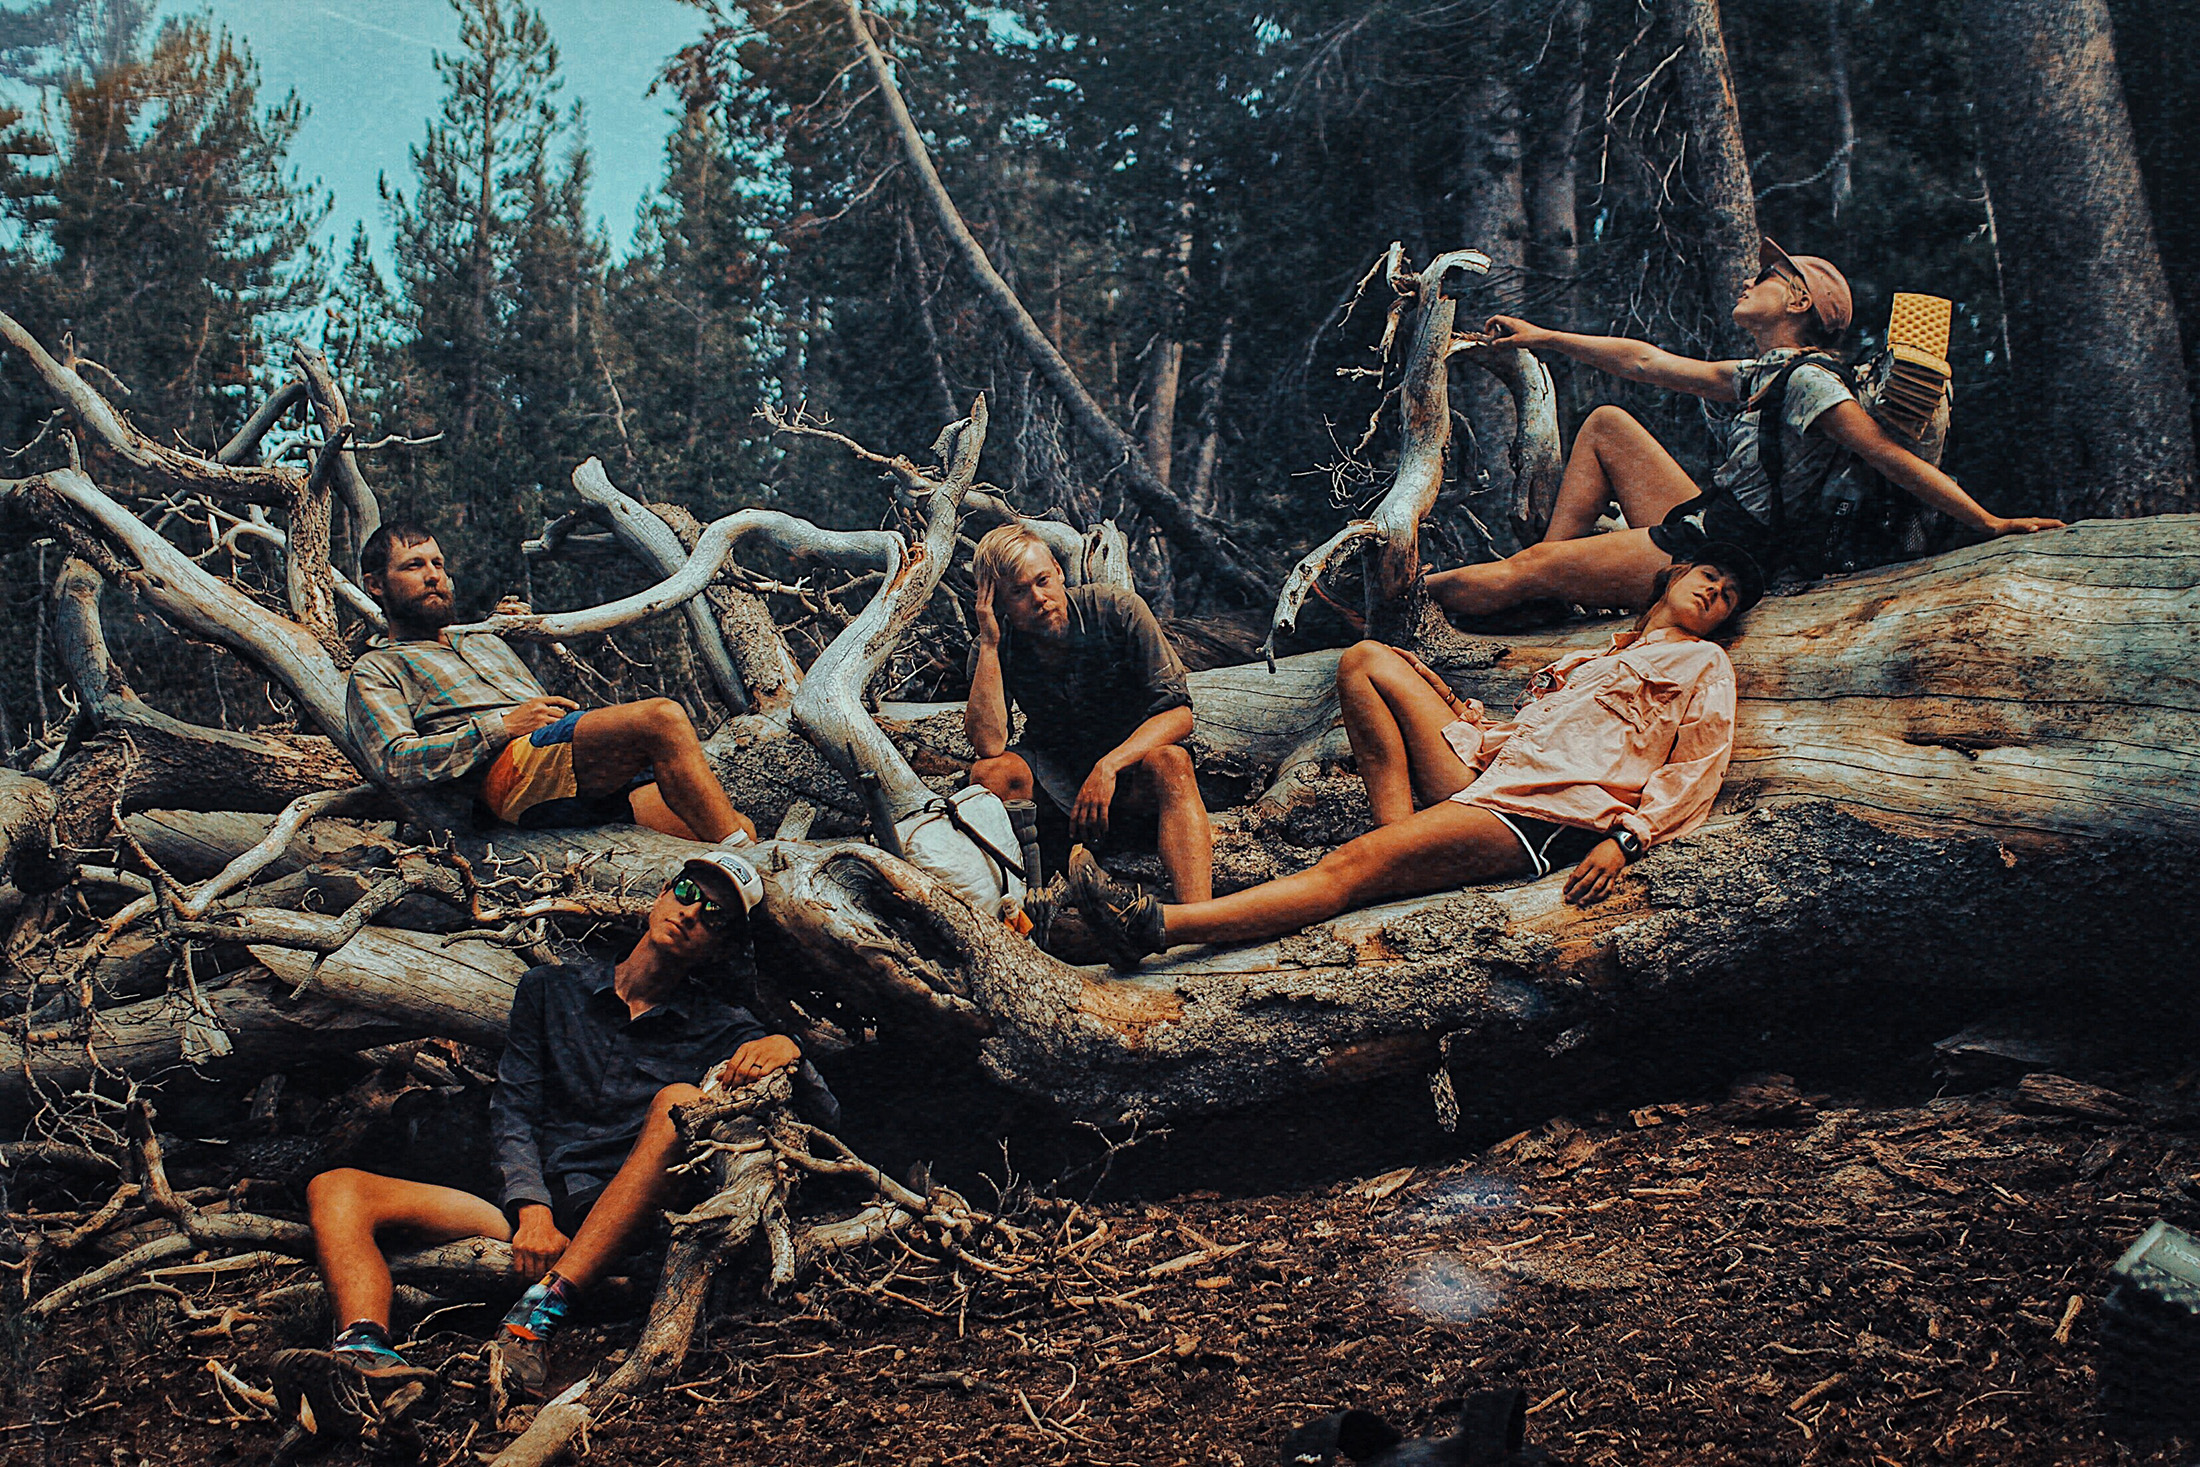 Nasty Beautiful: Captivating Images Expose Hikers at Their Most Vulnerable